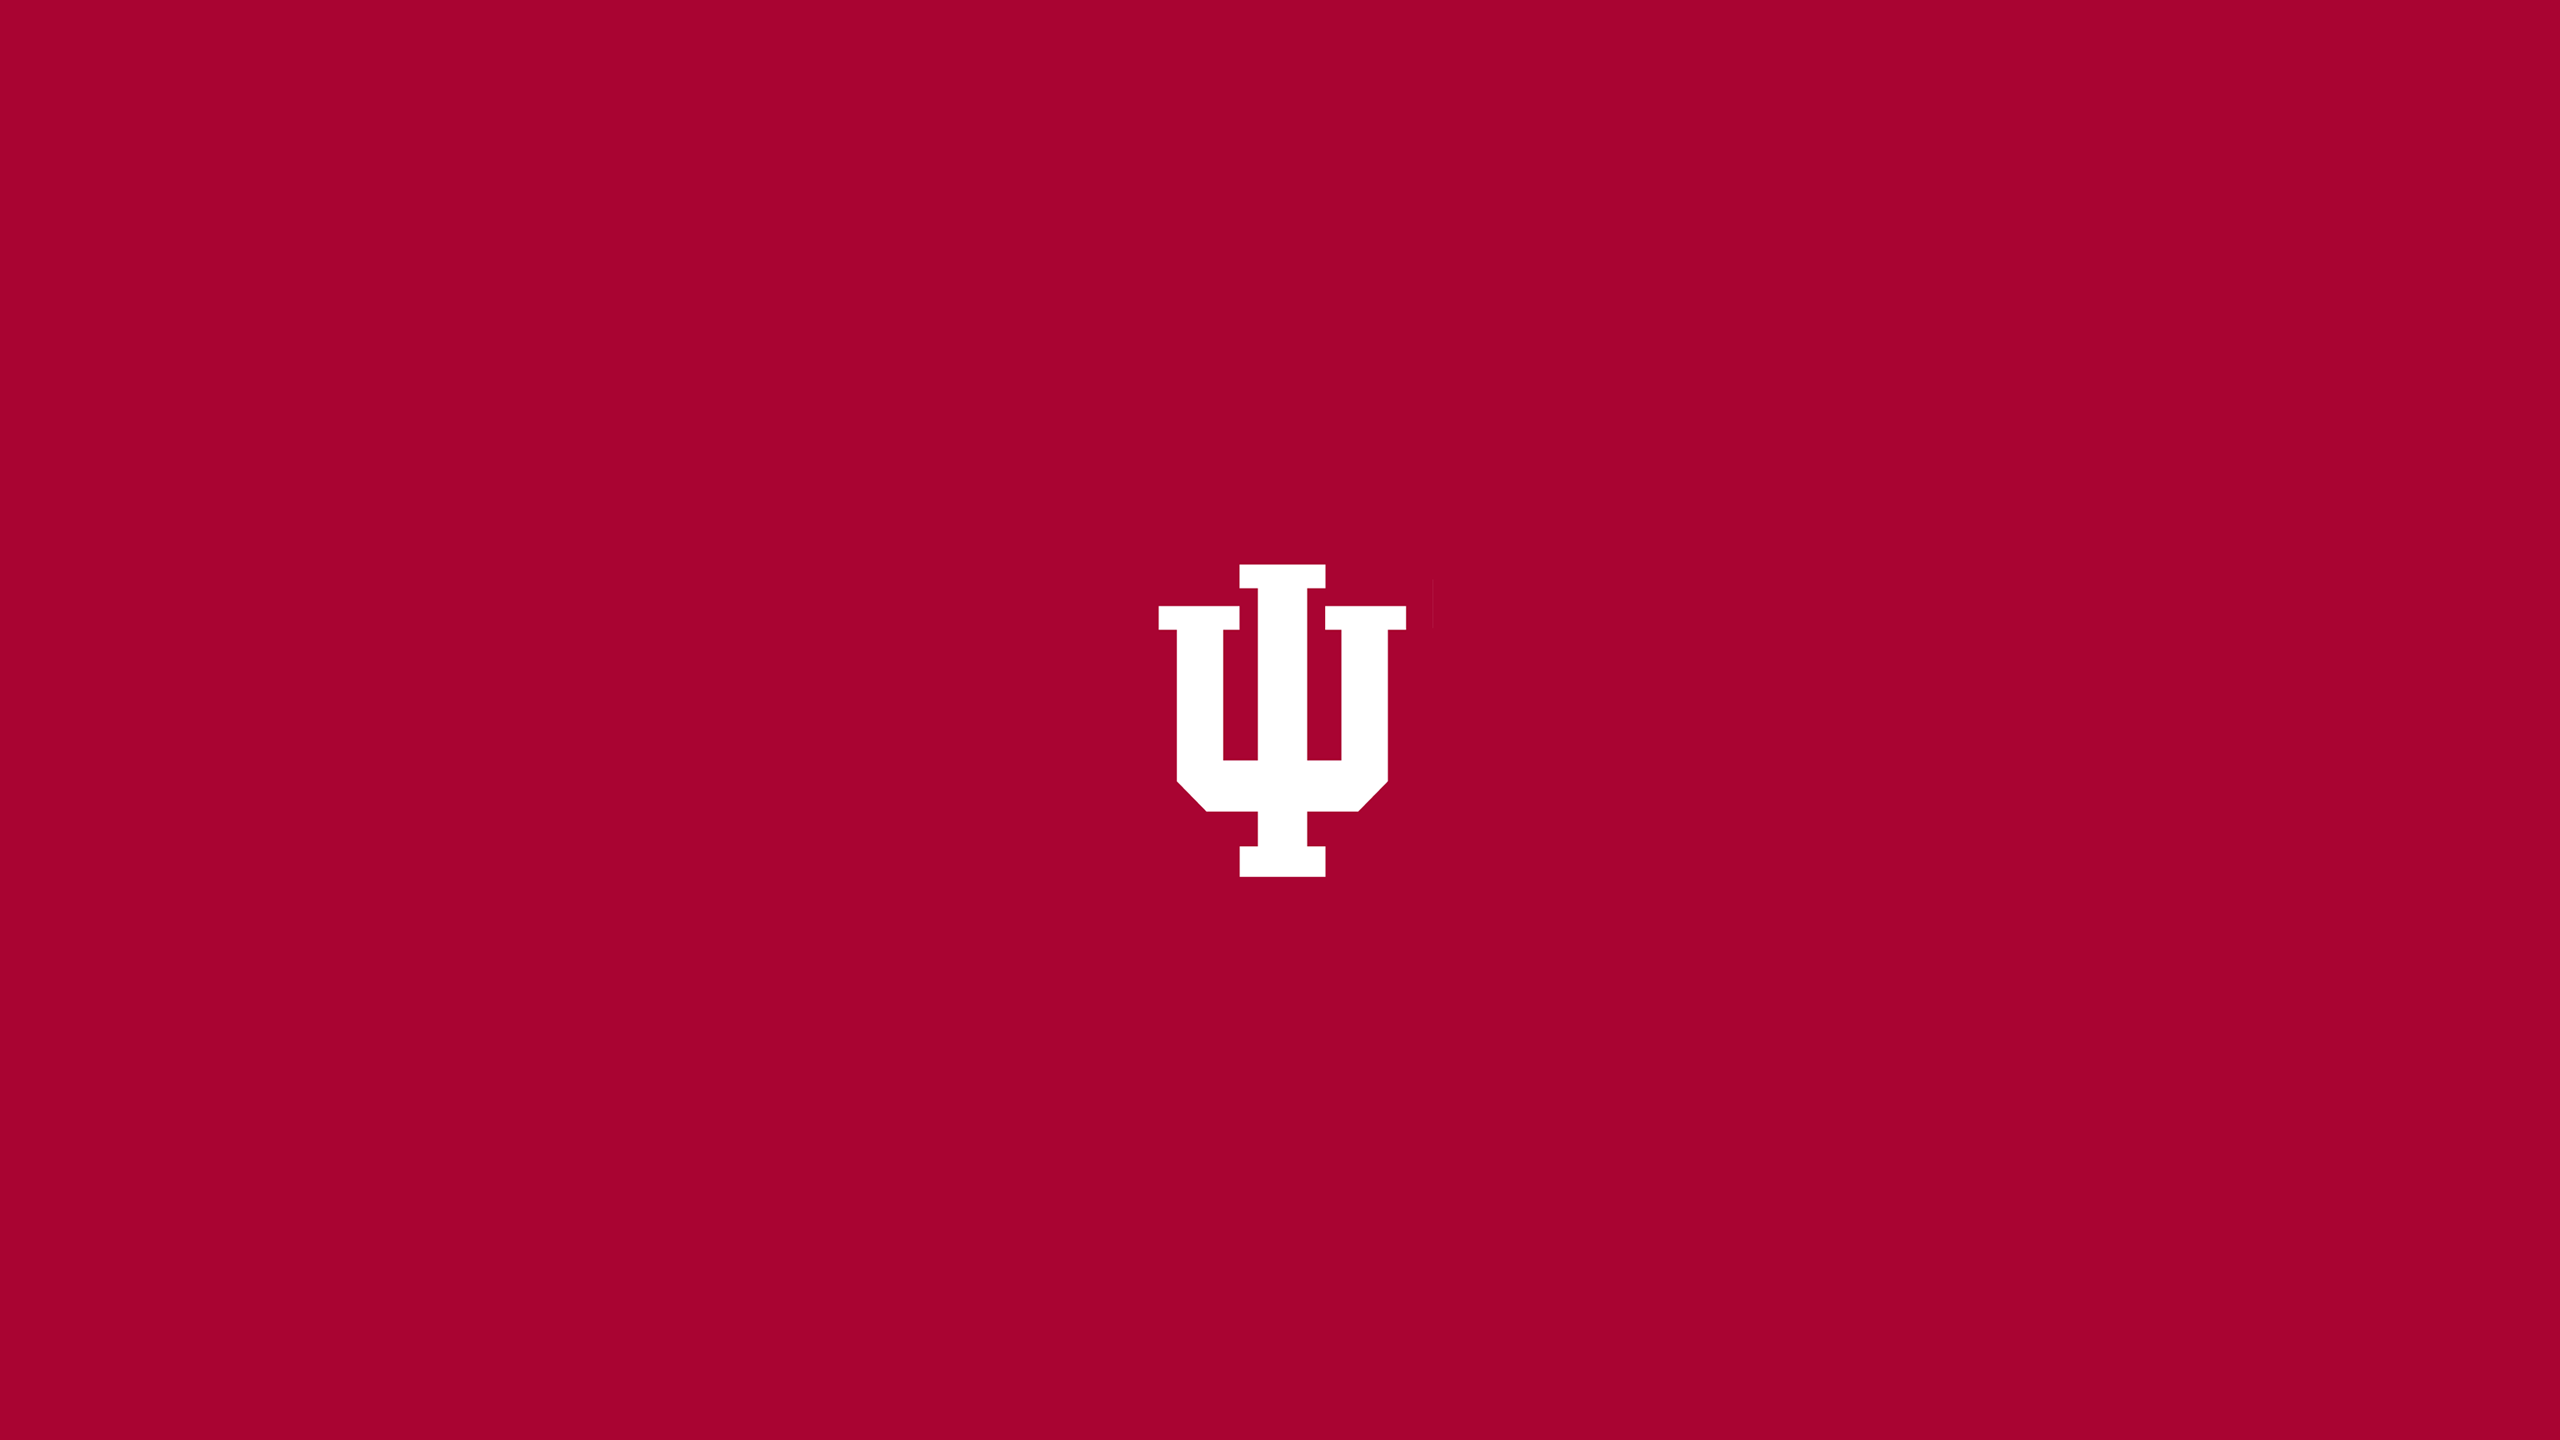 Indiana University Wallpapers 2560x1440